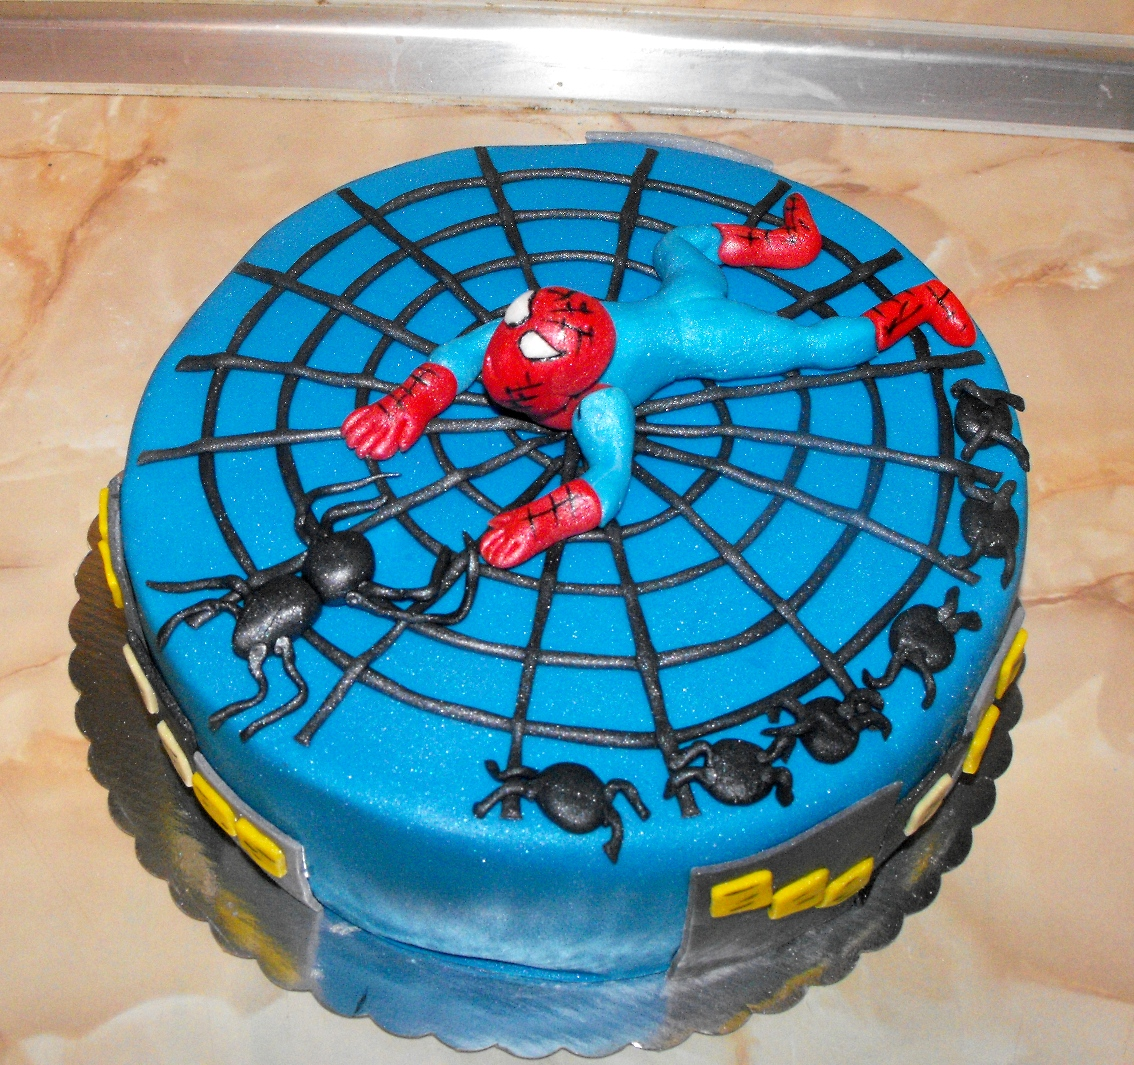 Enjoyable Spiderman Cakes Decoration Ideas Little Birthday Cakes Personalised Birthday Cards Beptaeletsinfo